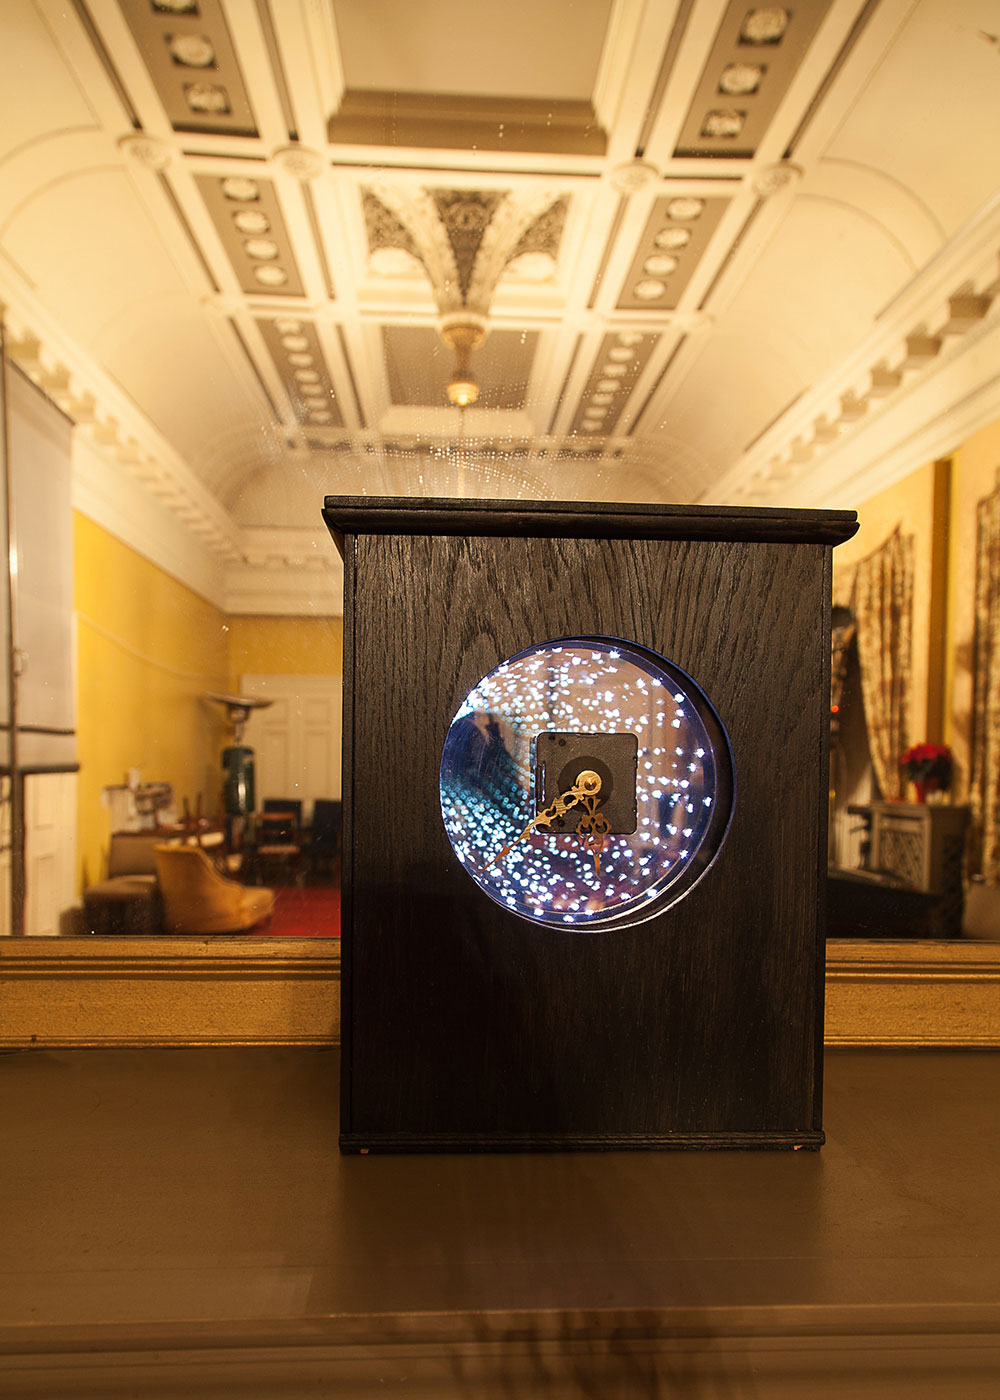 Time Machine, Sarah Sparkes 2013, wood, clock movement, infinity illusion.